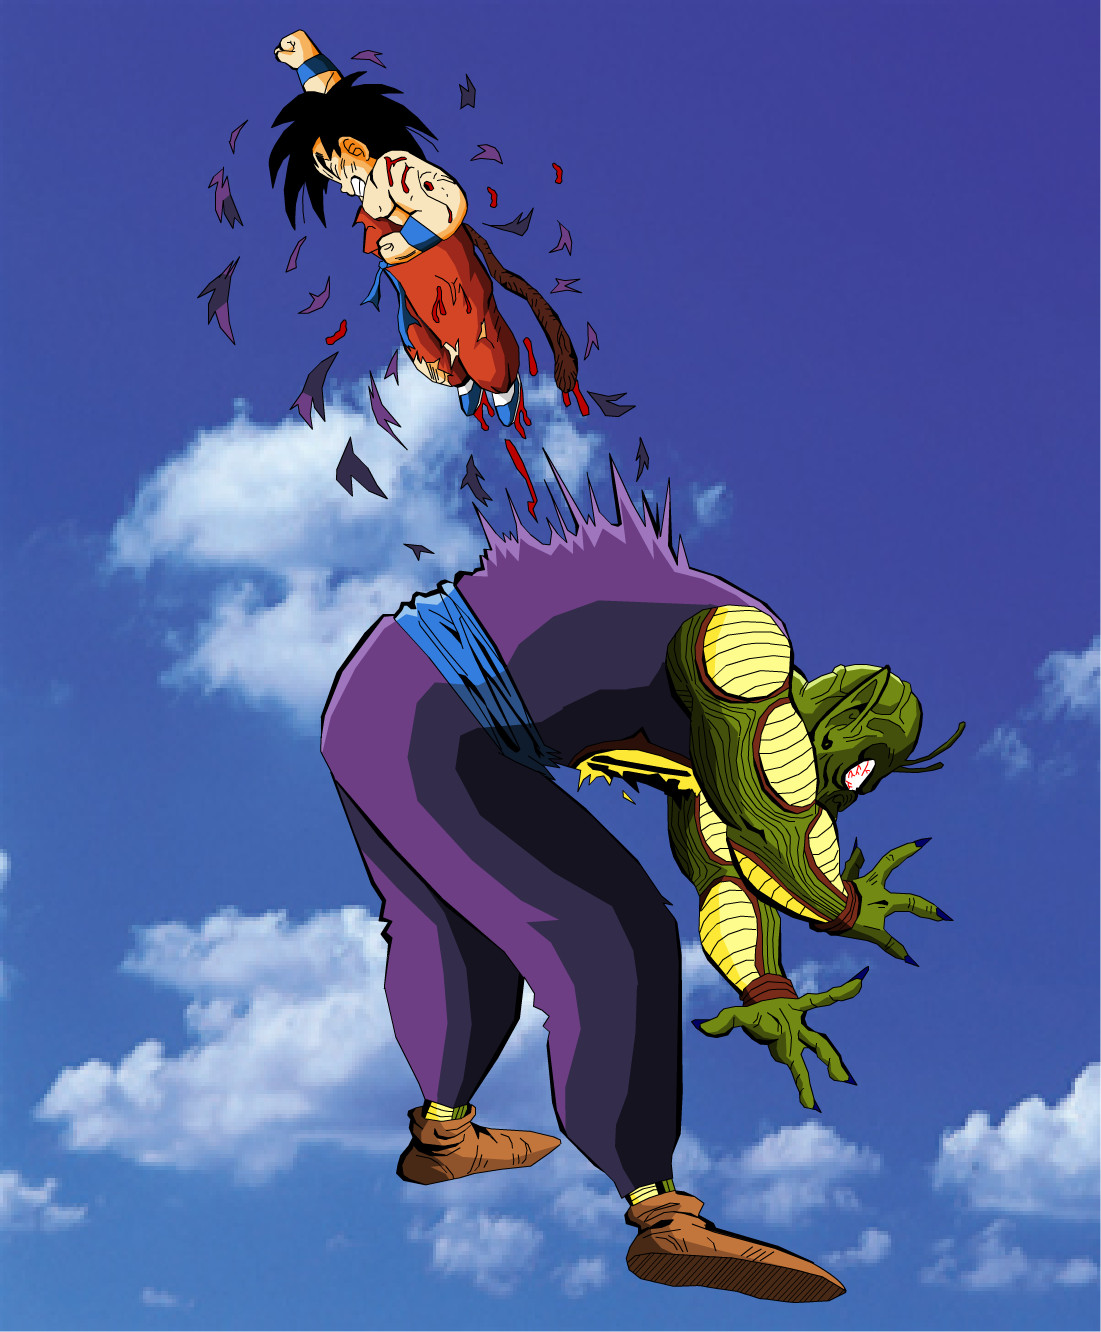 Kid_Goku_kills_King_Piccolo_by_eggmanrules.jpg